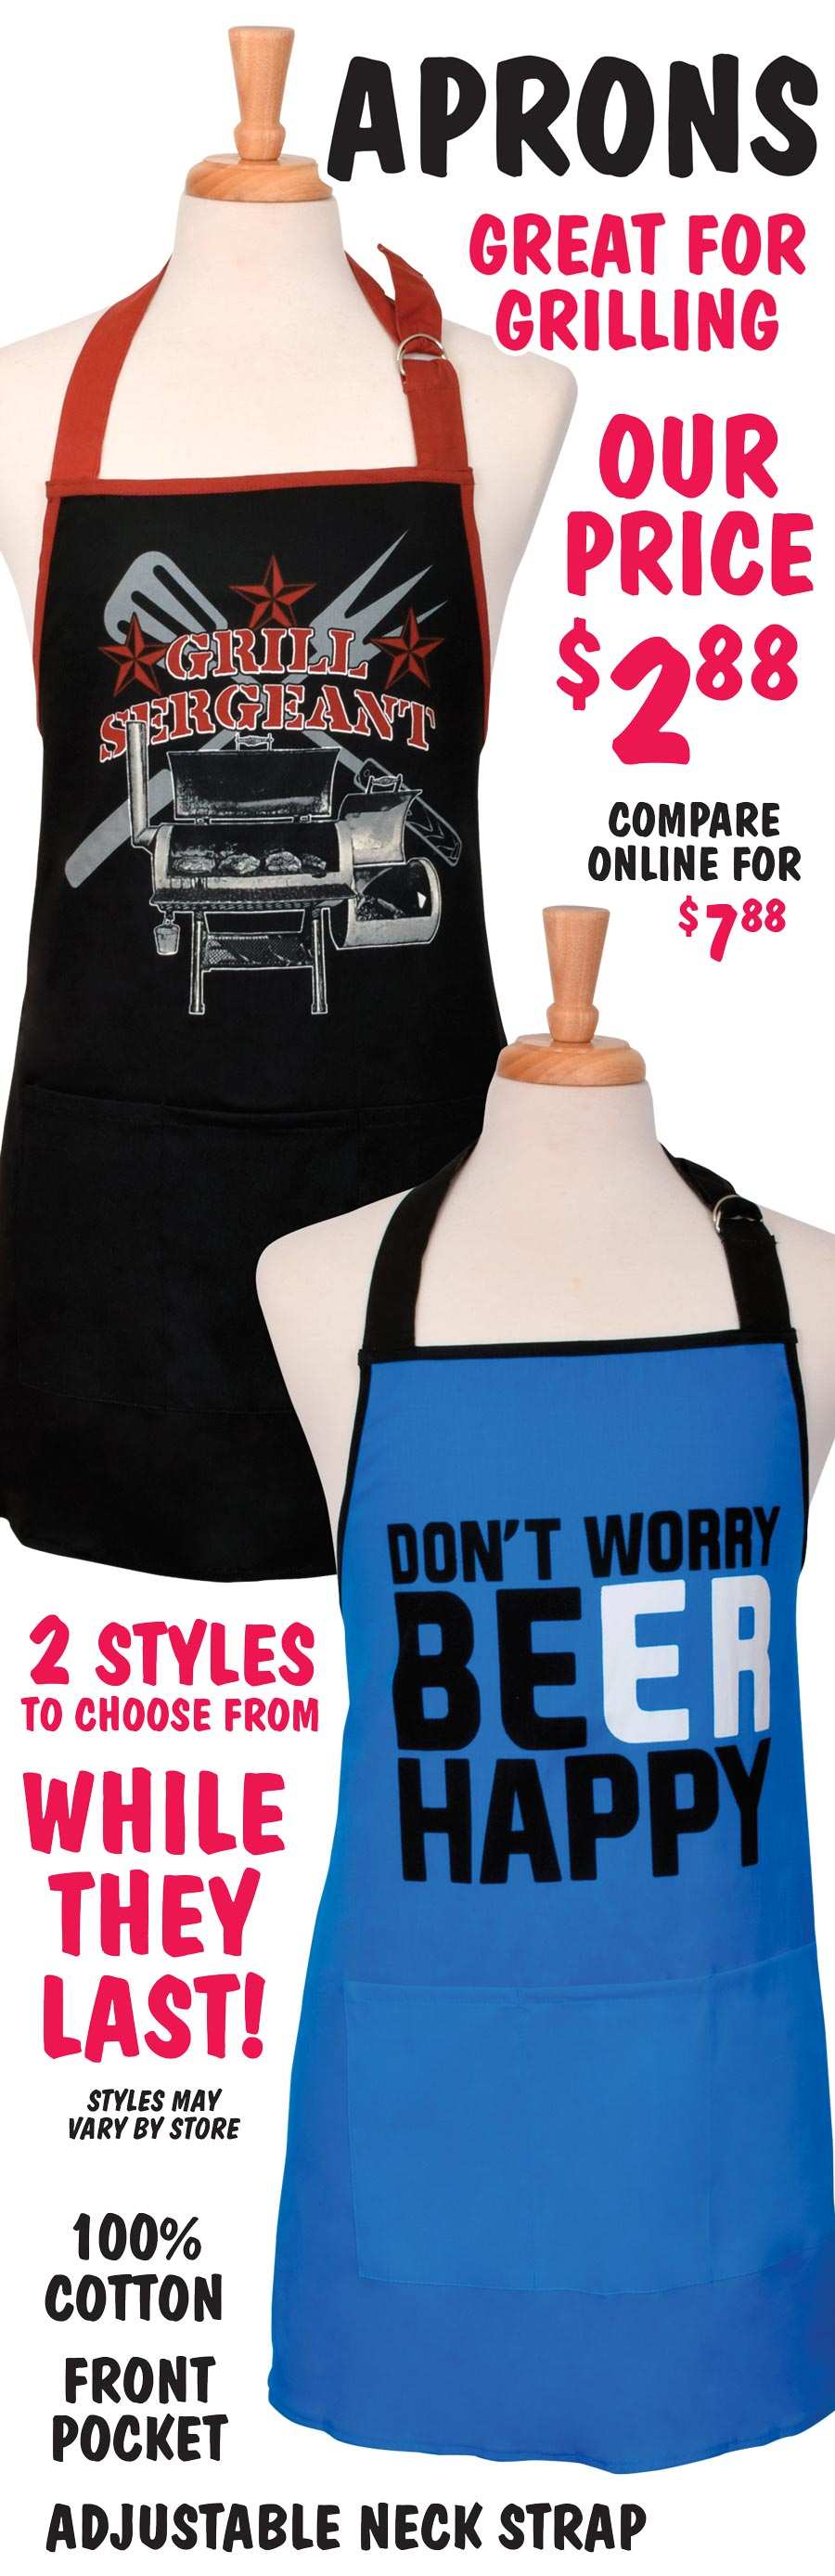 Grilling Aprons - 2 Styles $2.88 - while they last